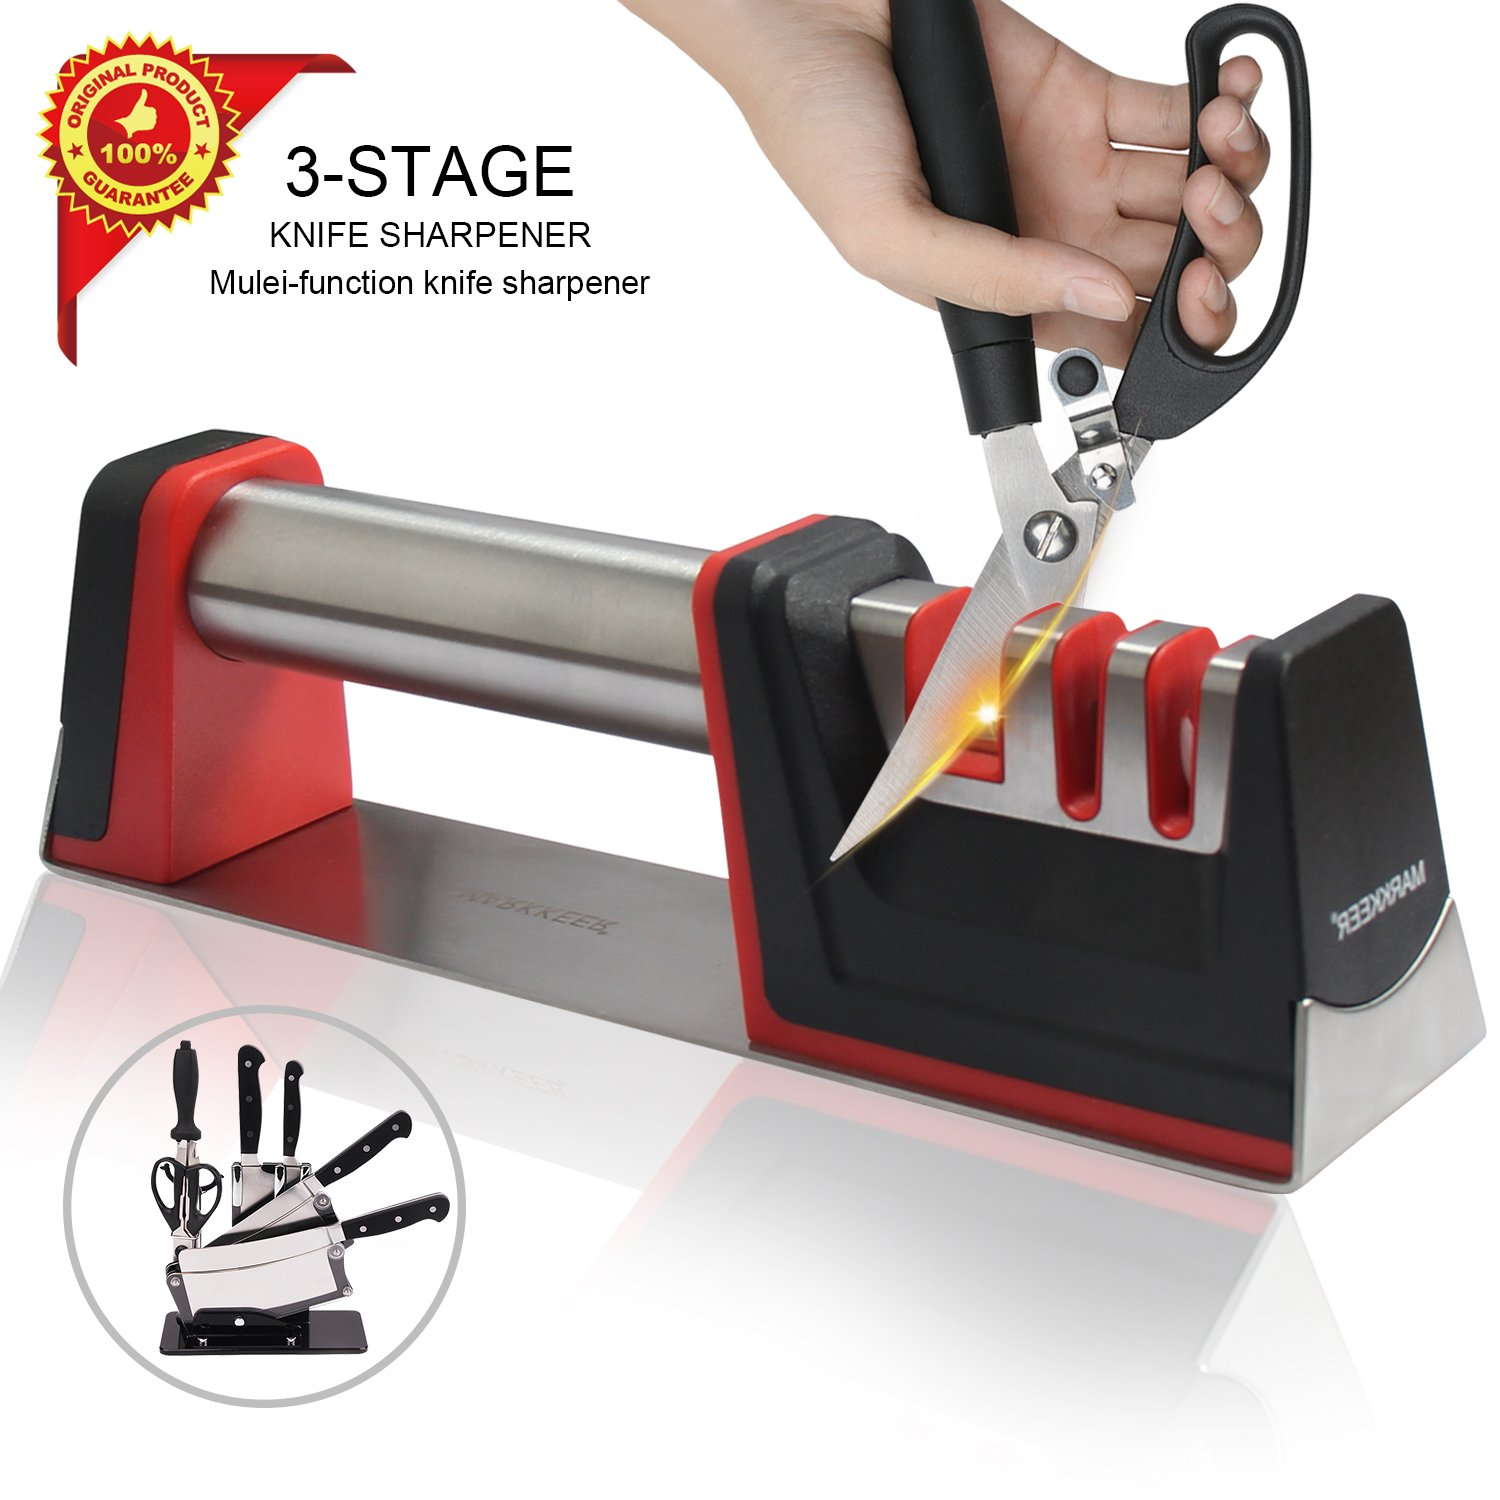 Landtaix Upgrade Kitchen Chef Knife Sharpener Scissors 304 Stainless Steel handle,3-Stage Knife Sharpening Tool Helps Repair,Restore The Most Professional Knife Sharpeners Safe and Easy to Use